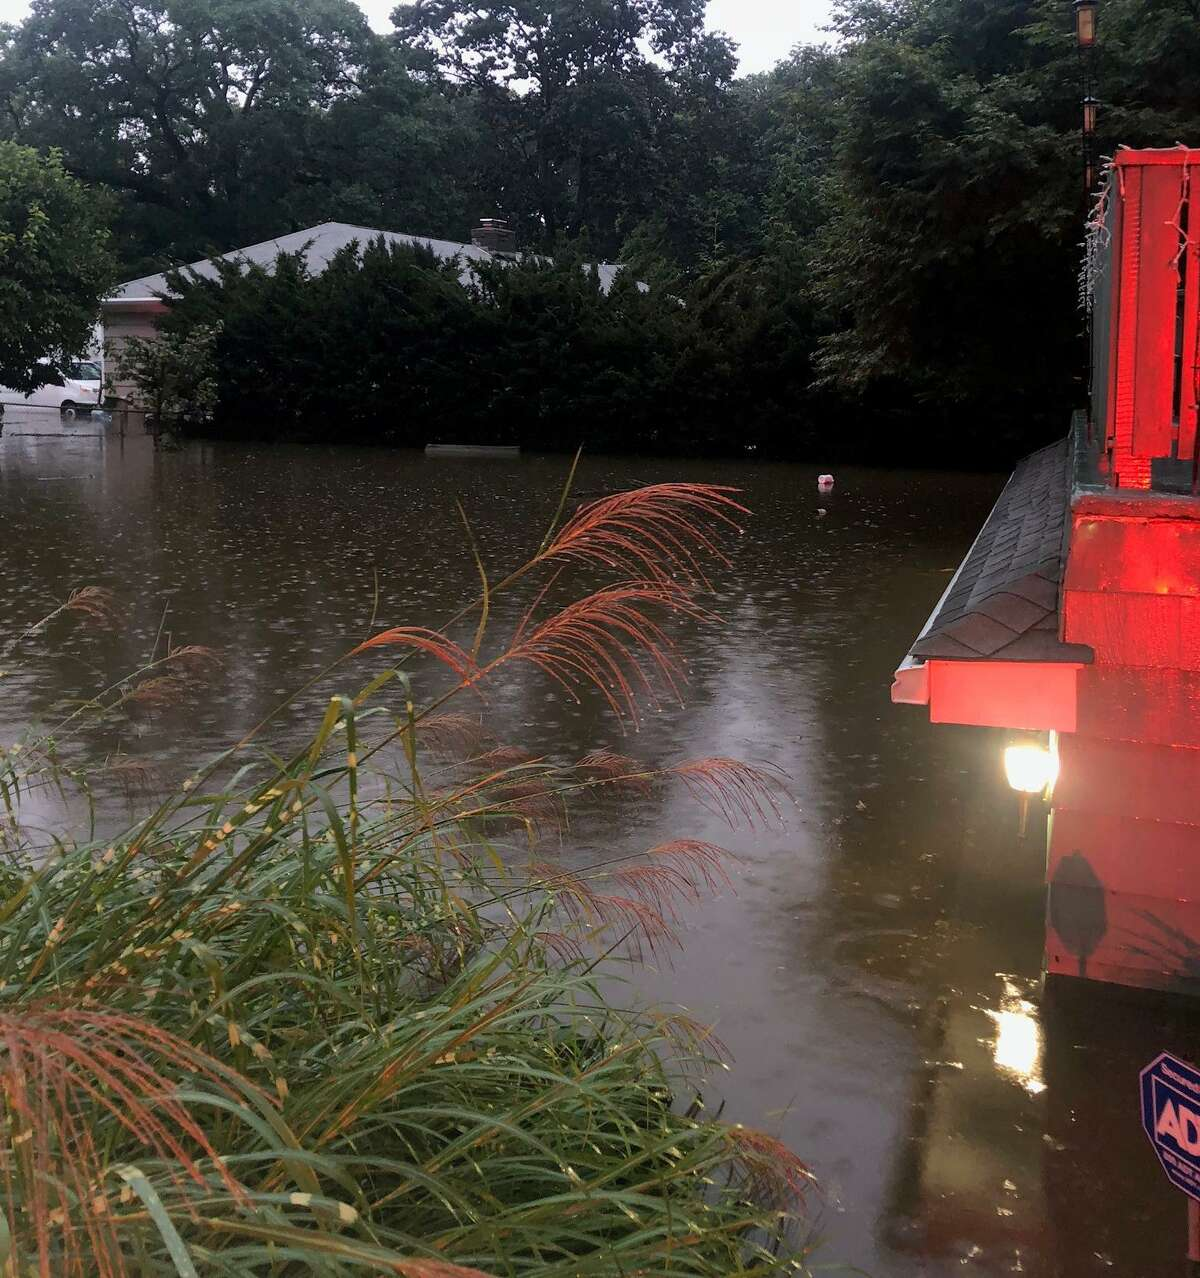 This photograph supplied by the Fire Department shows some of the flooding residents were dealing with Tuesday.